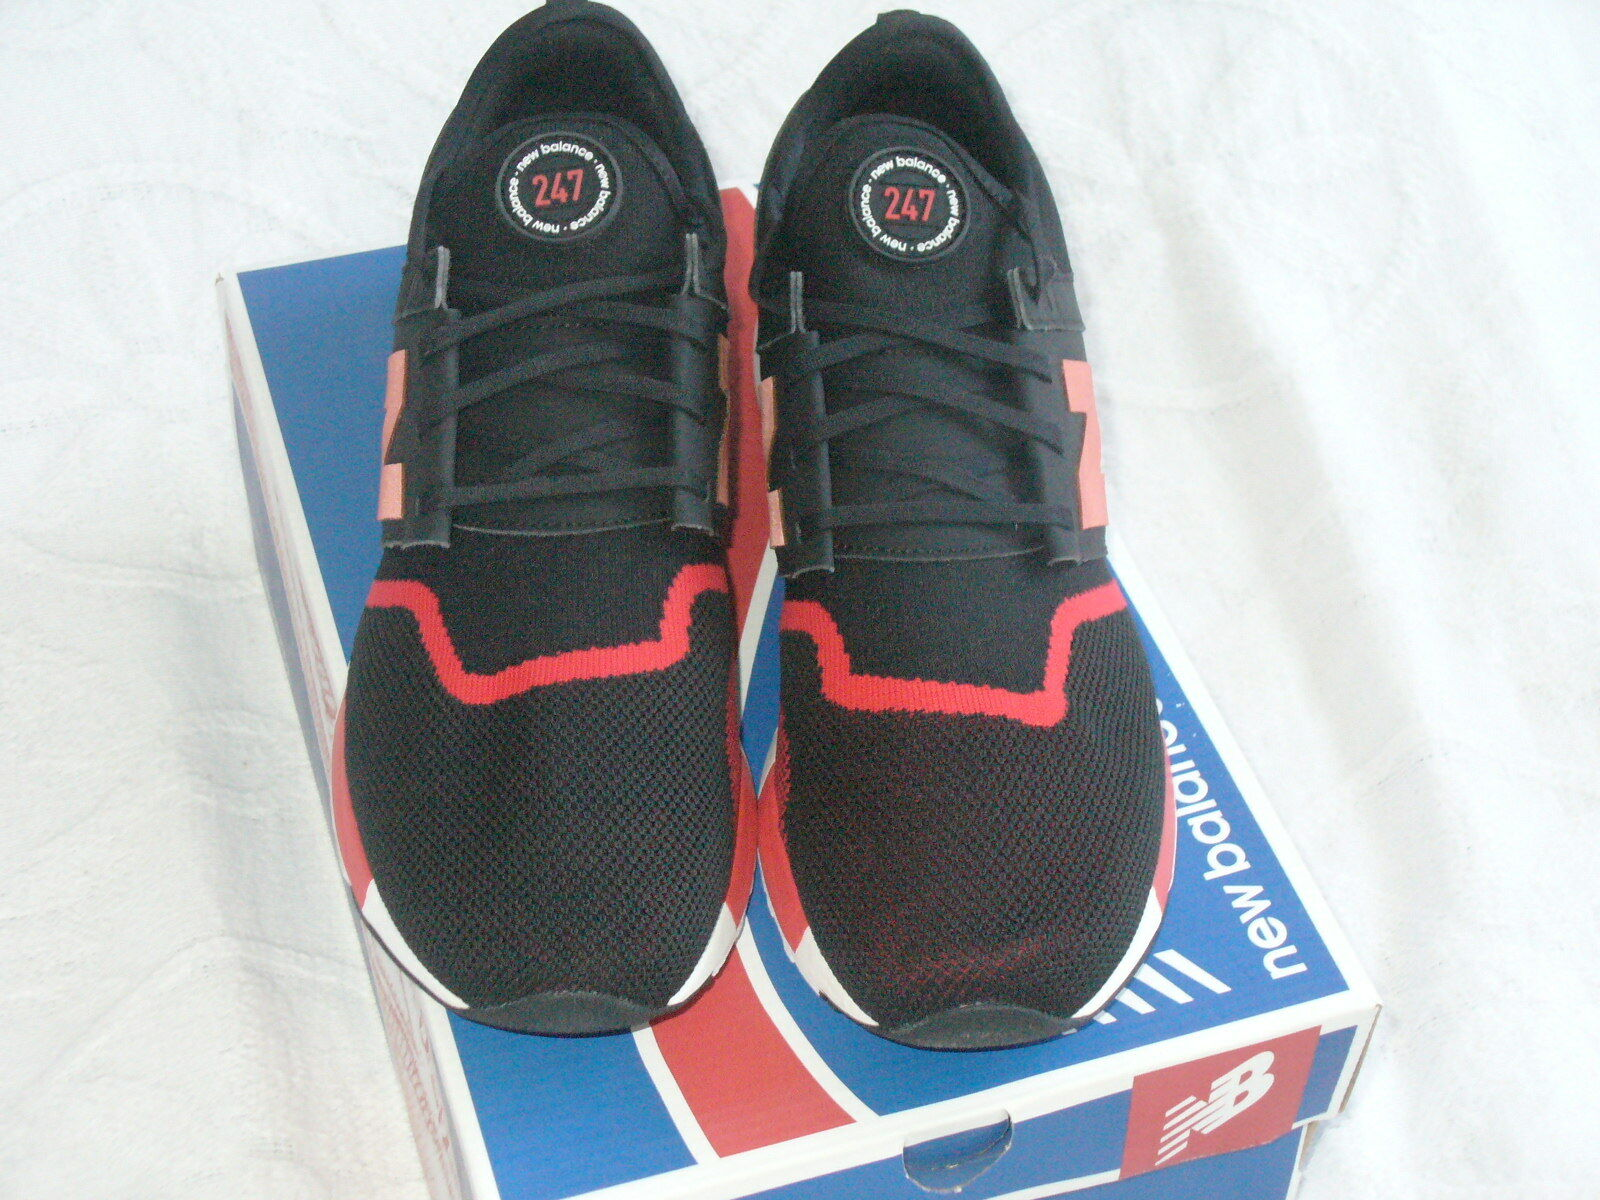 New Balance MRL247GR - Men's 247 Luxe Lifestyle shoes shoes shoes Sz 13 Blk Red NWB.  LOOK  77ec97